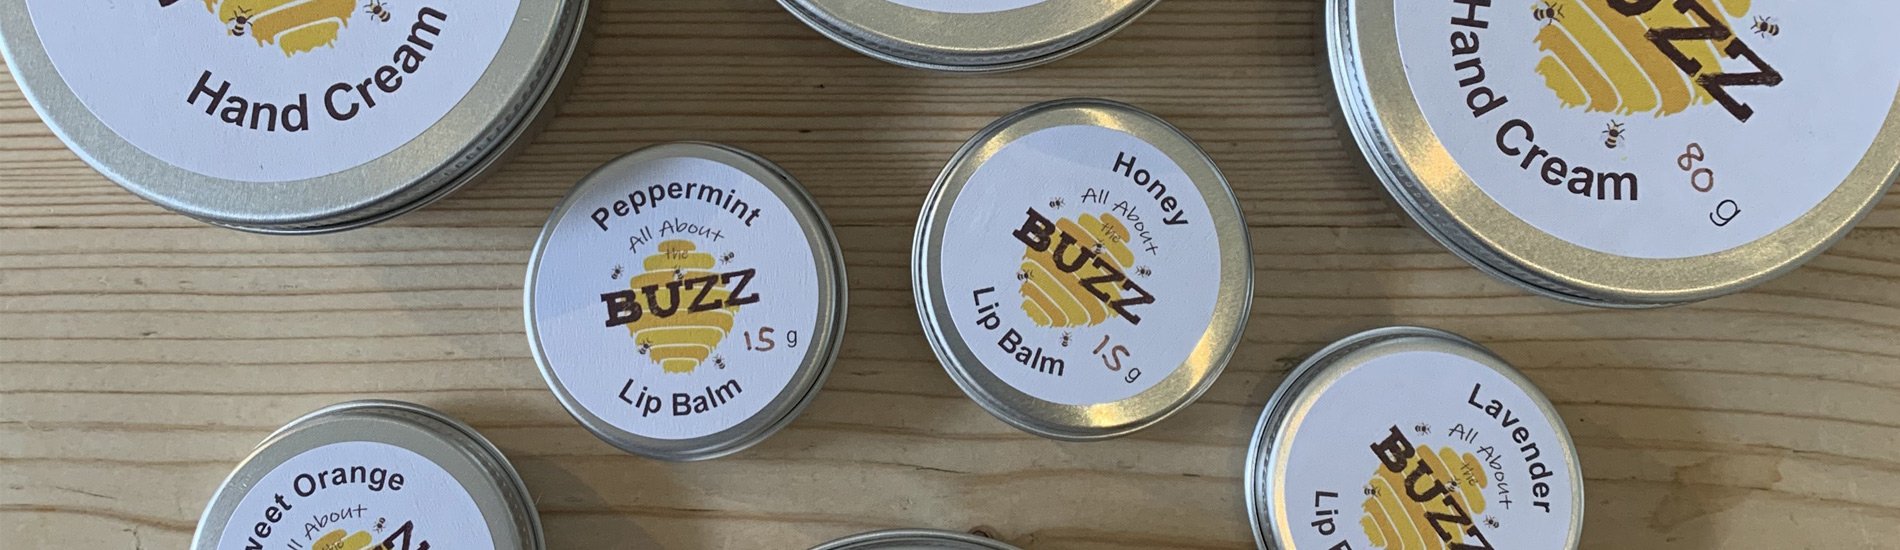 Natural Bee Based Body Products